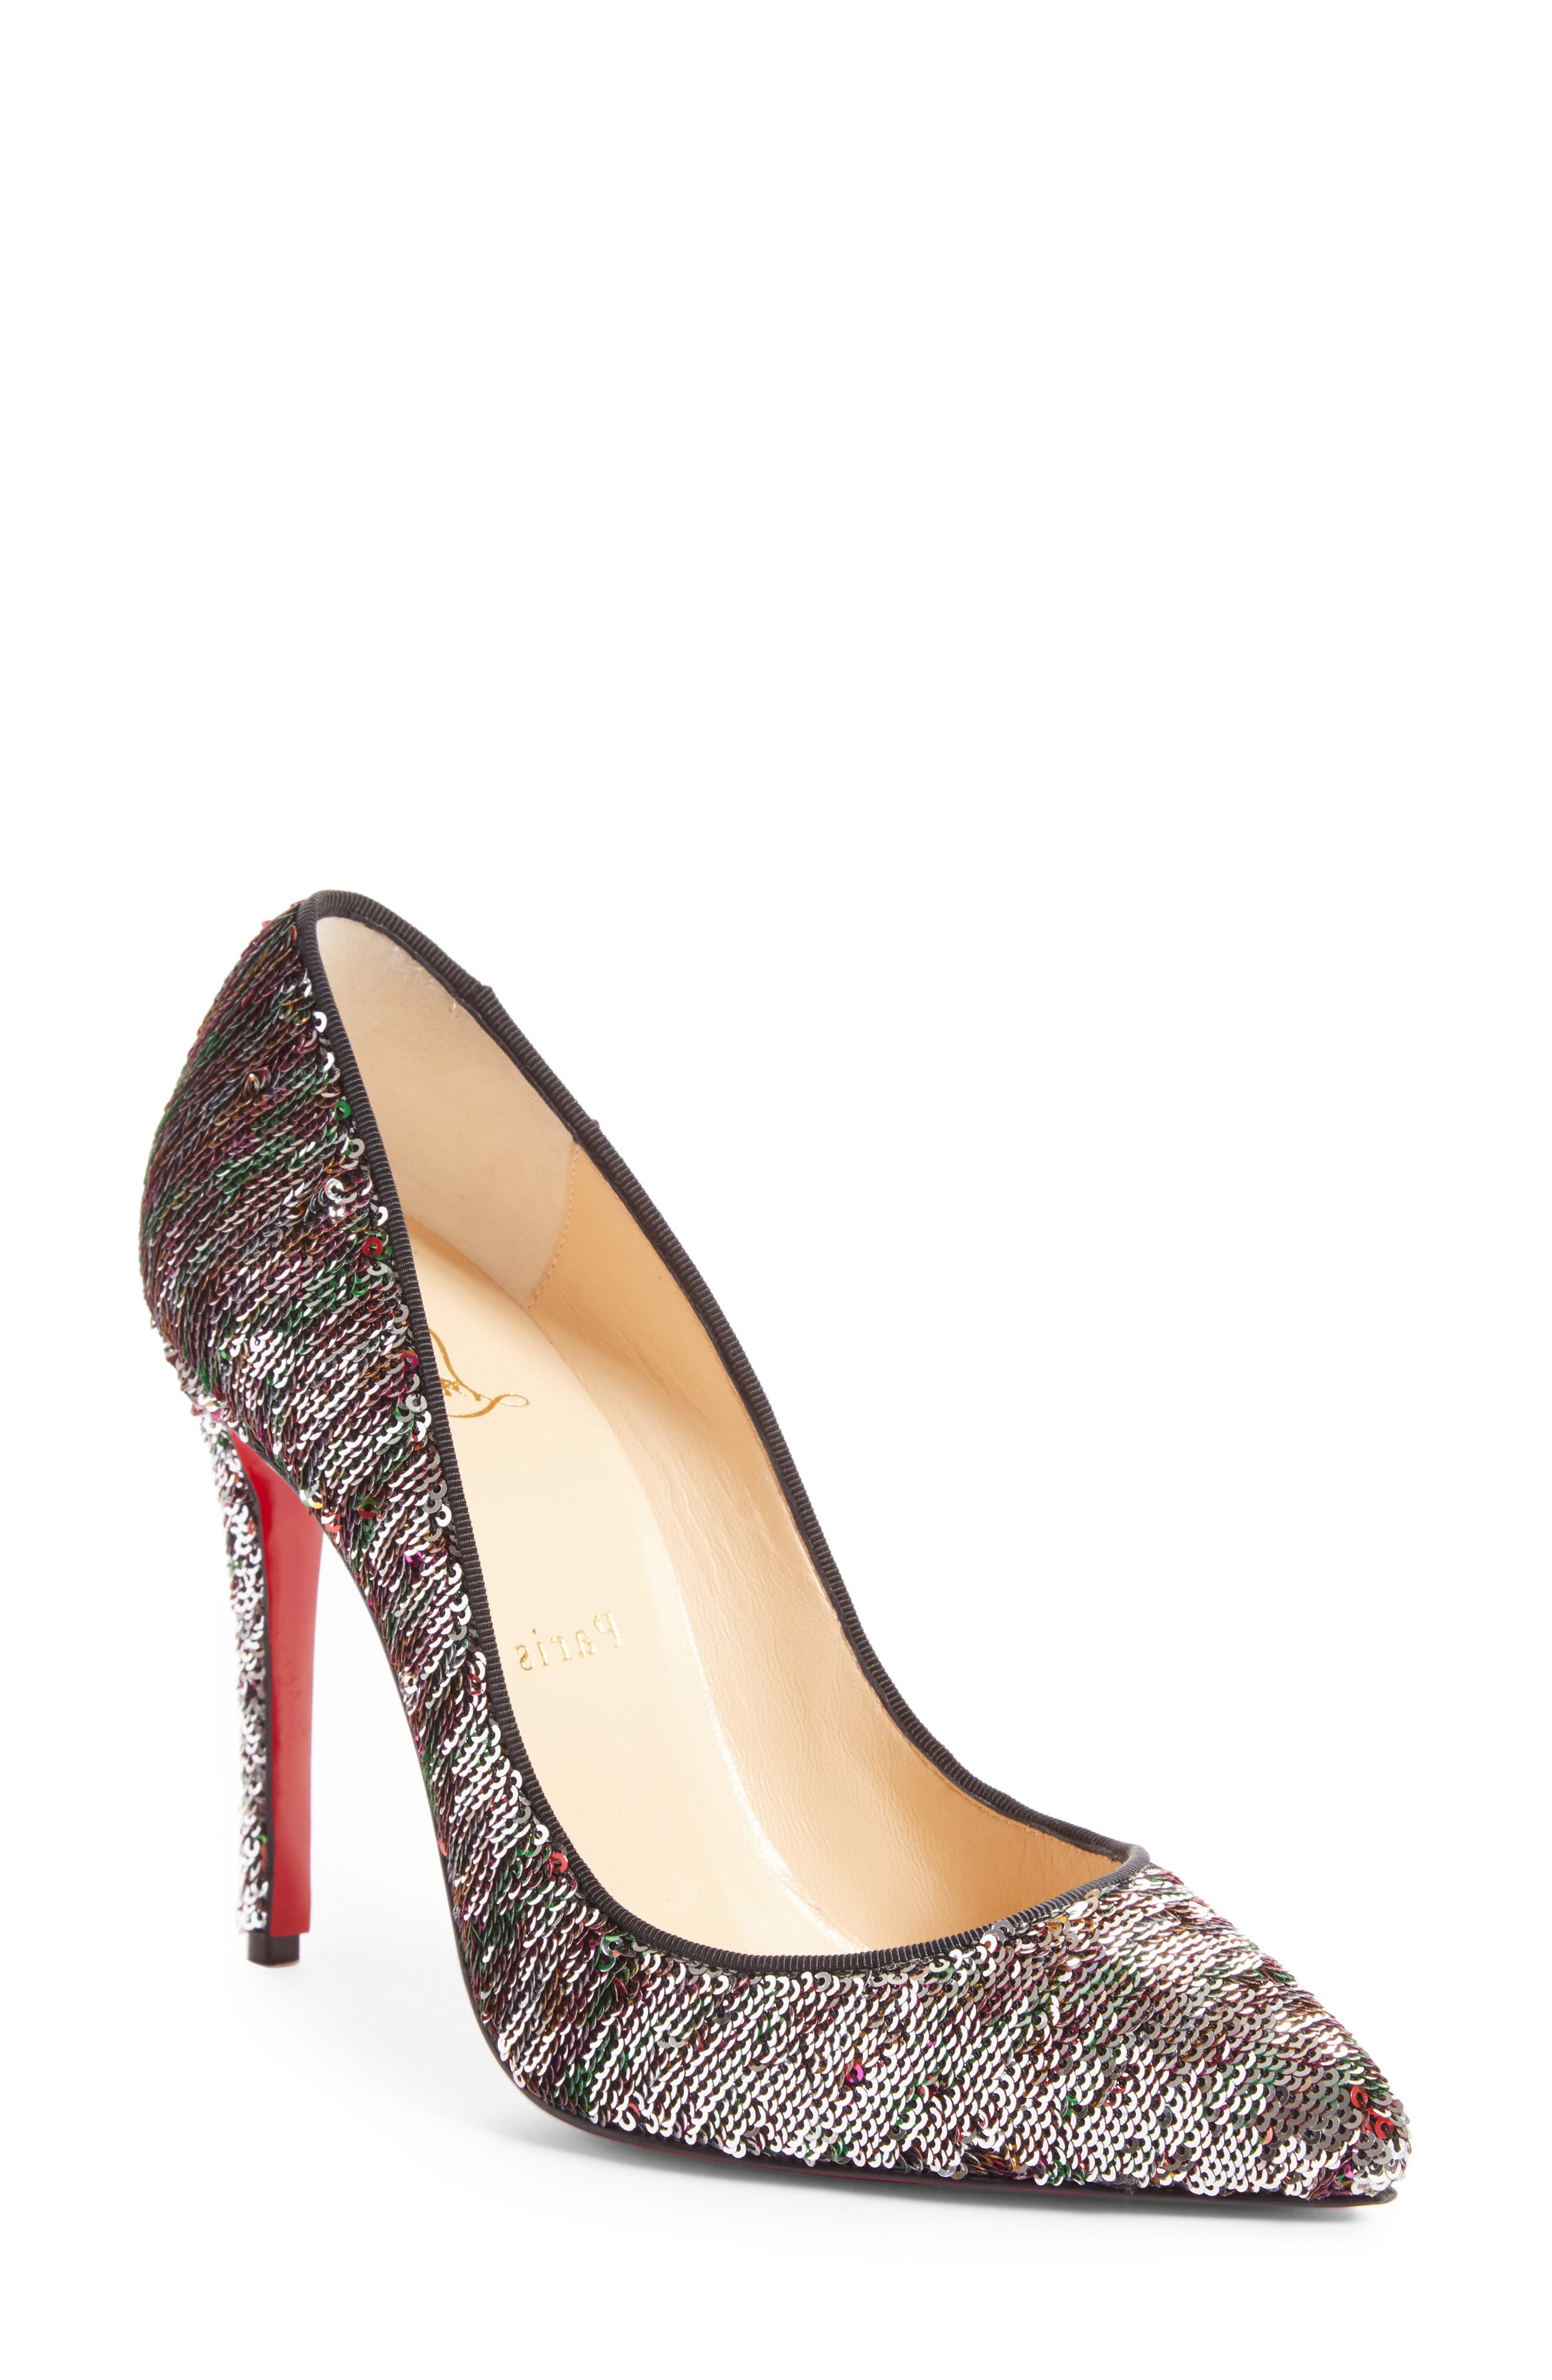 Pigalle Follies Sequin Pointy Toe Pump,                             Main thumbnail 1, color,